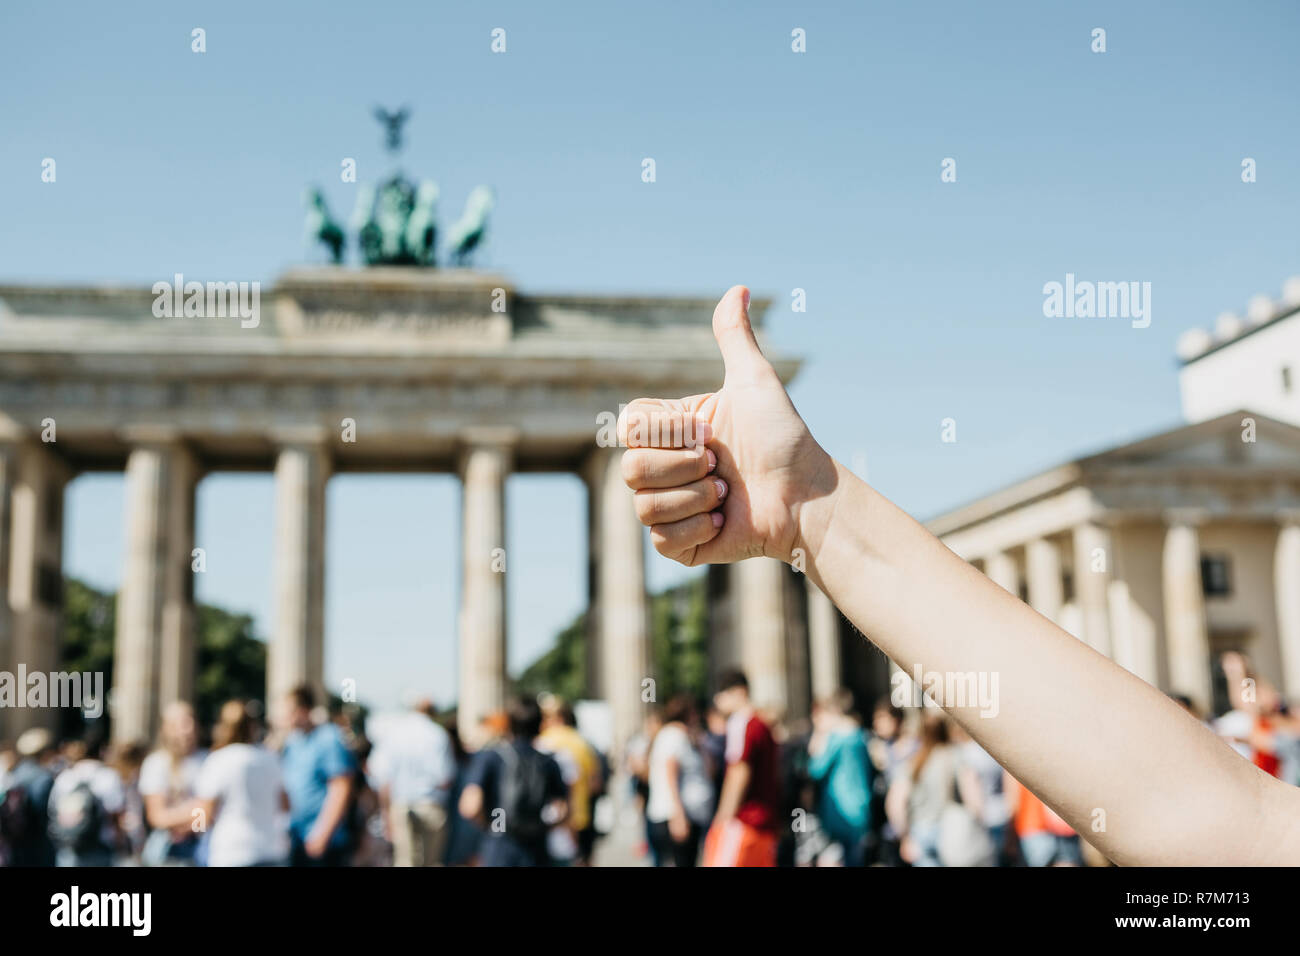 A person shows a sign with a finger upwards meaning everything is okay or confirms against the background of the Brandenburg Gate and blurred unrecognizable people in Berlin in Germany. - Stock Image